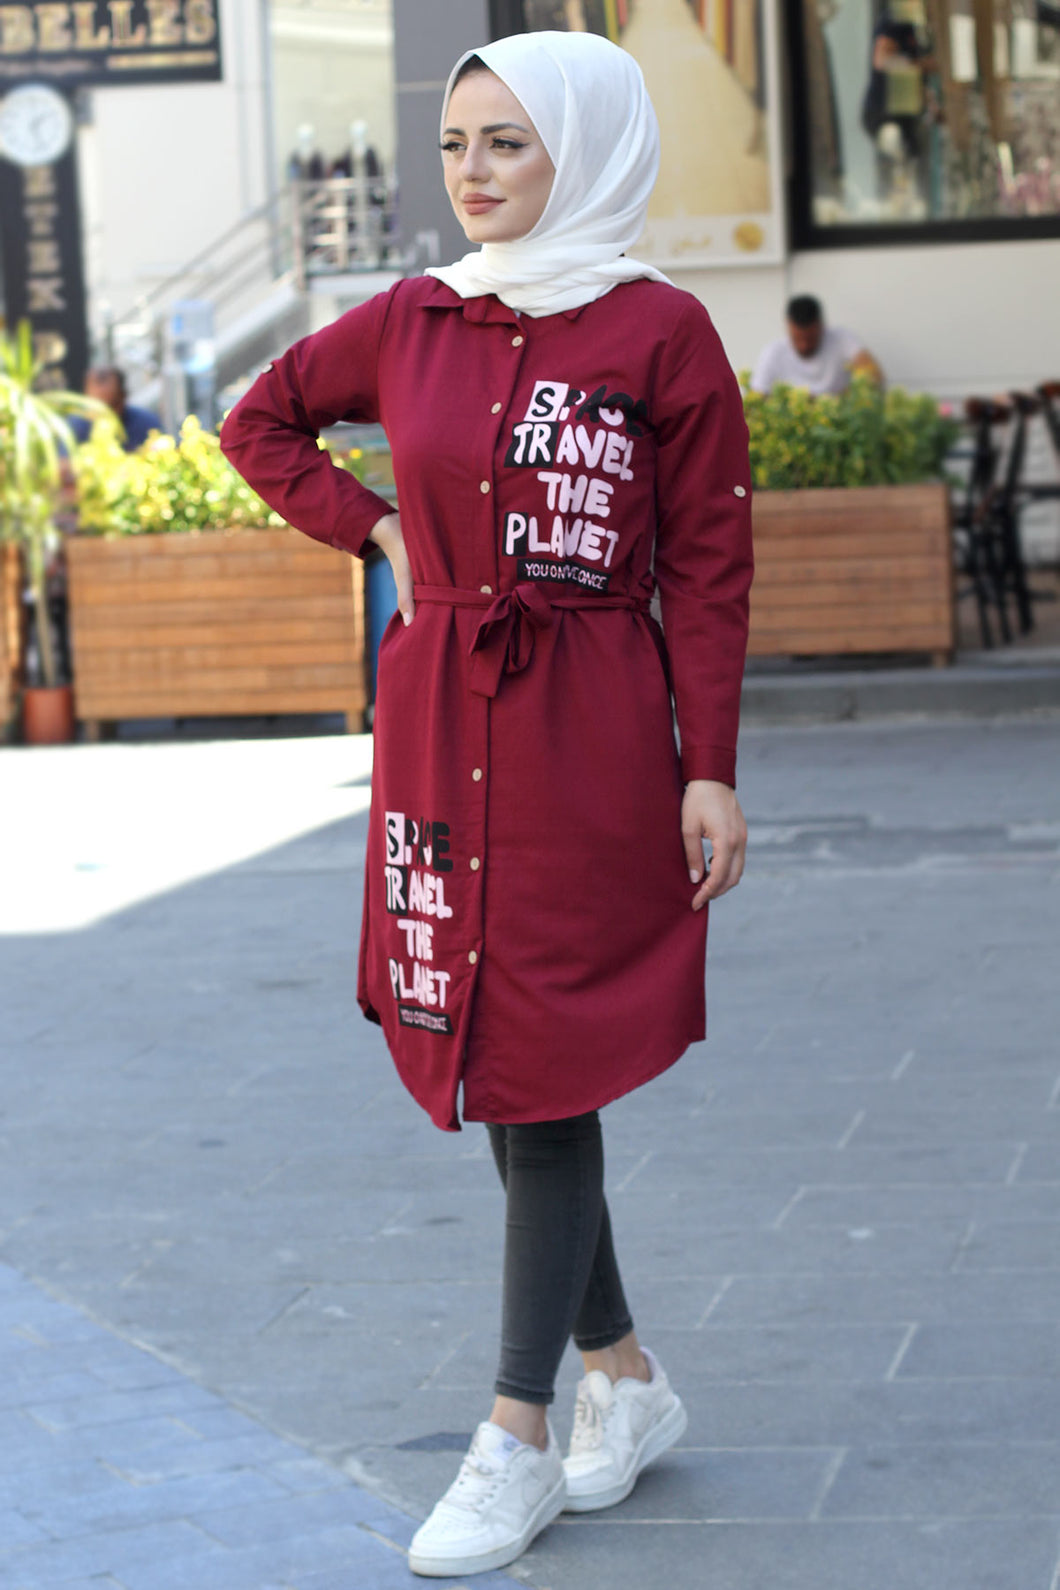 Women's Printed Claret Red Modest Tunic